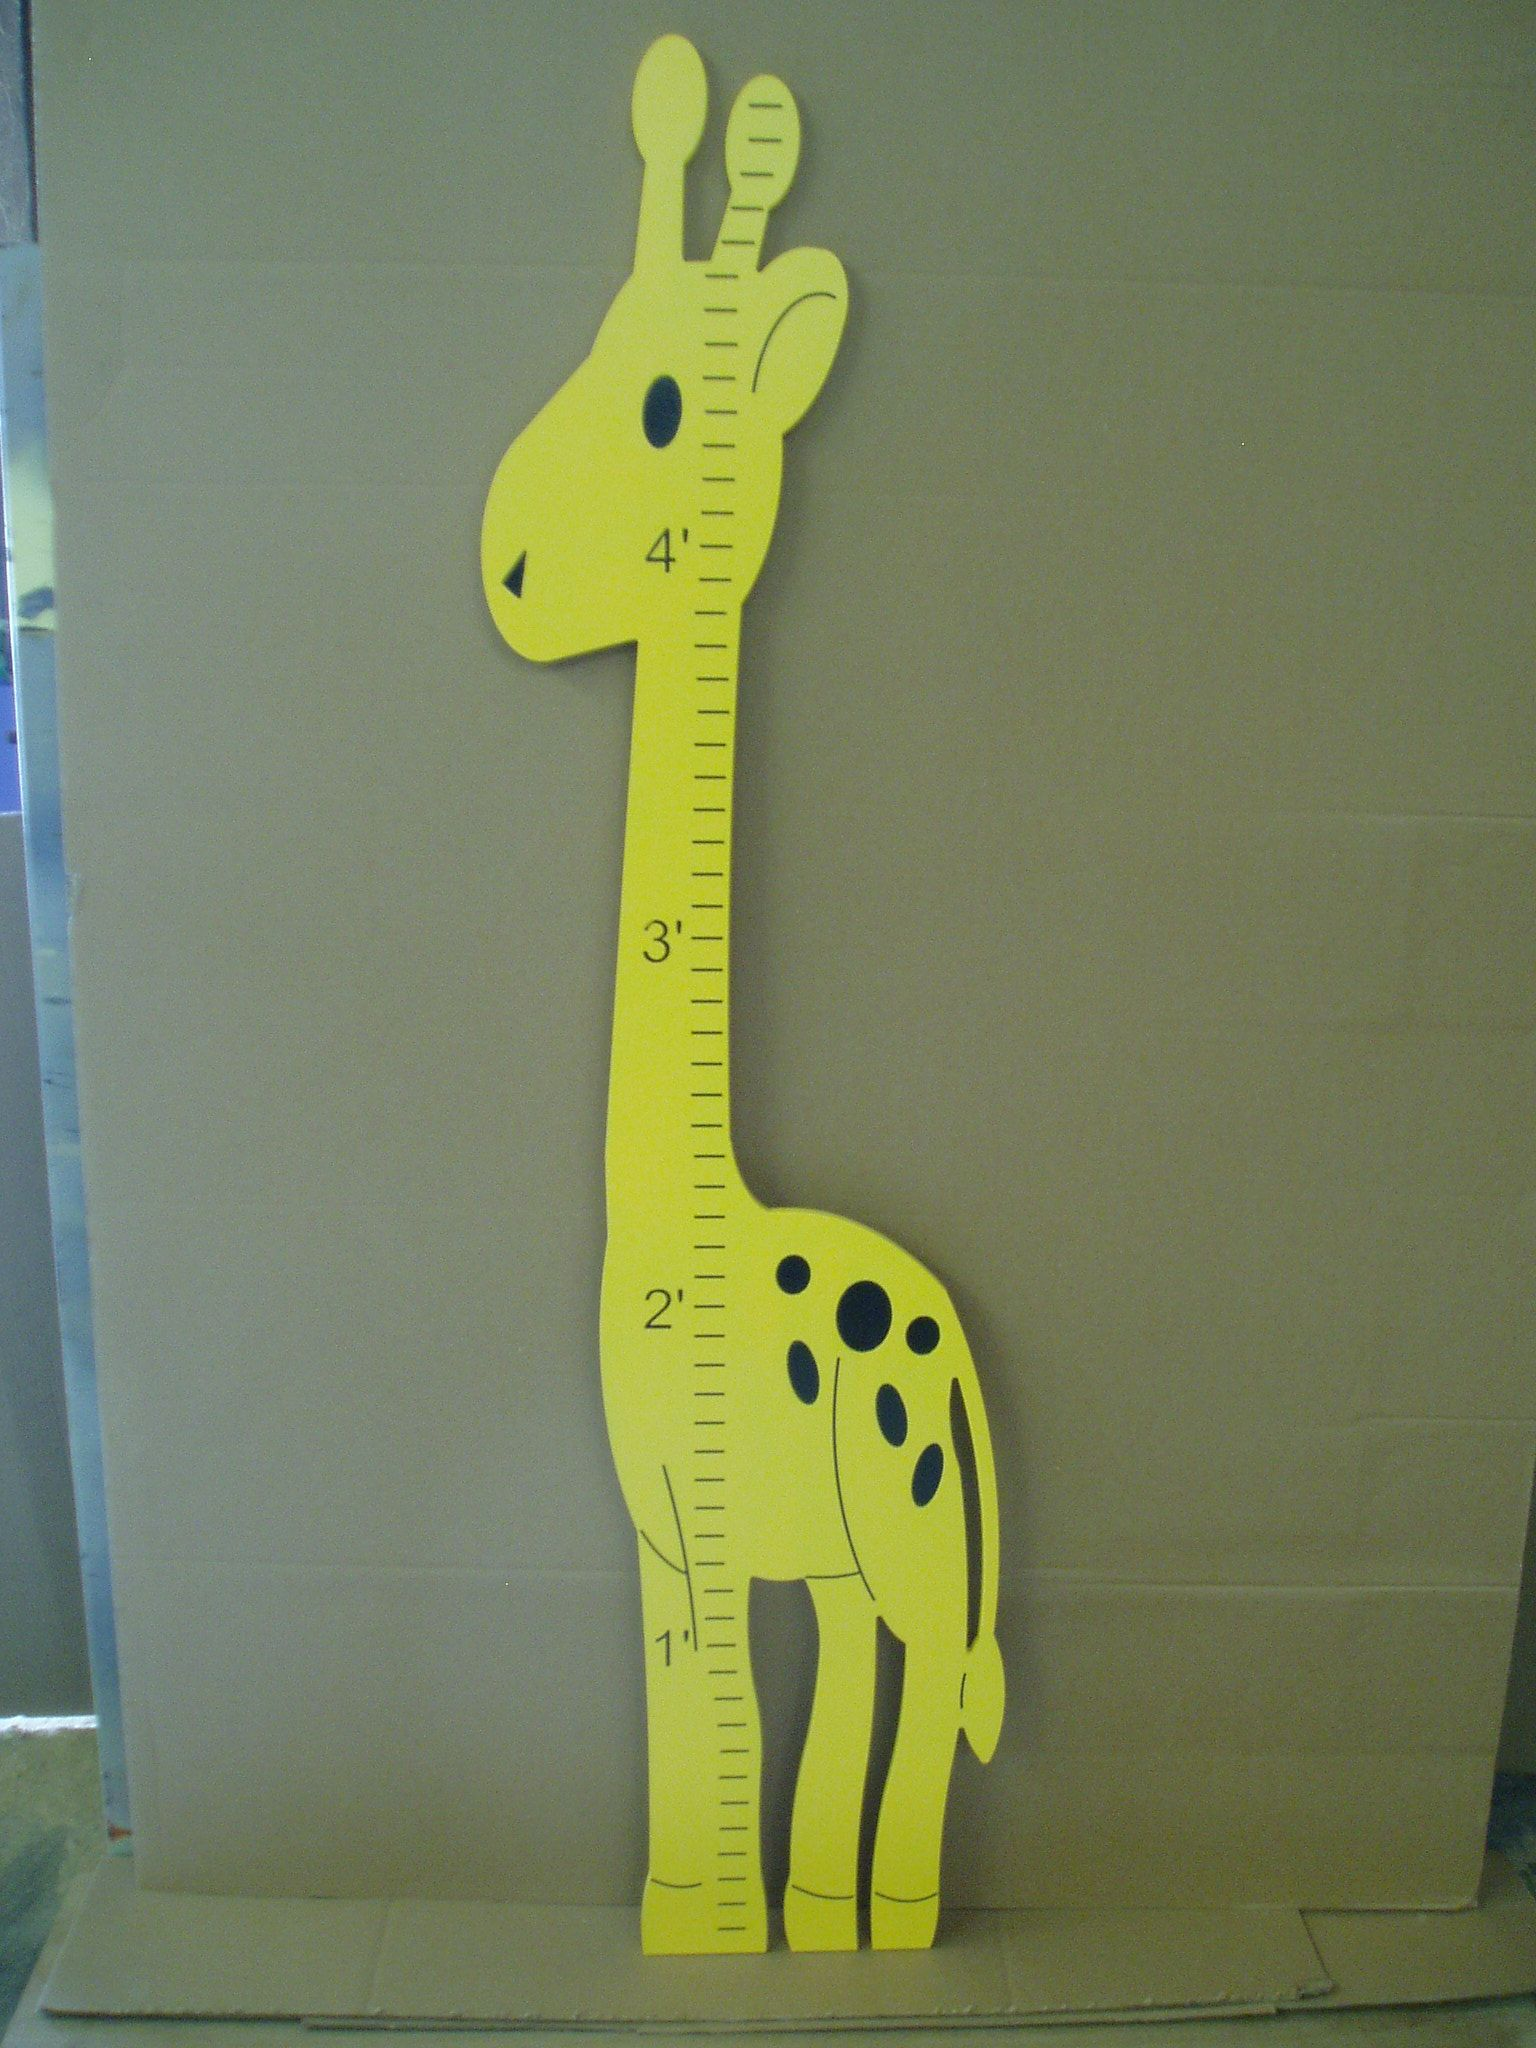 25 best kids images on pinterest growth charts wooden growth 25 best kids images on pinterest growth charts wooden growth charts and giraffes nvjuhfo Choice Image